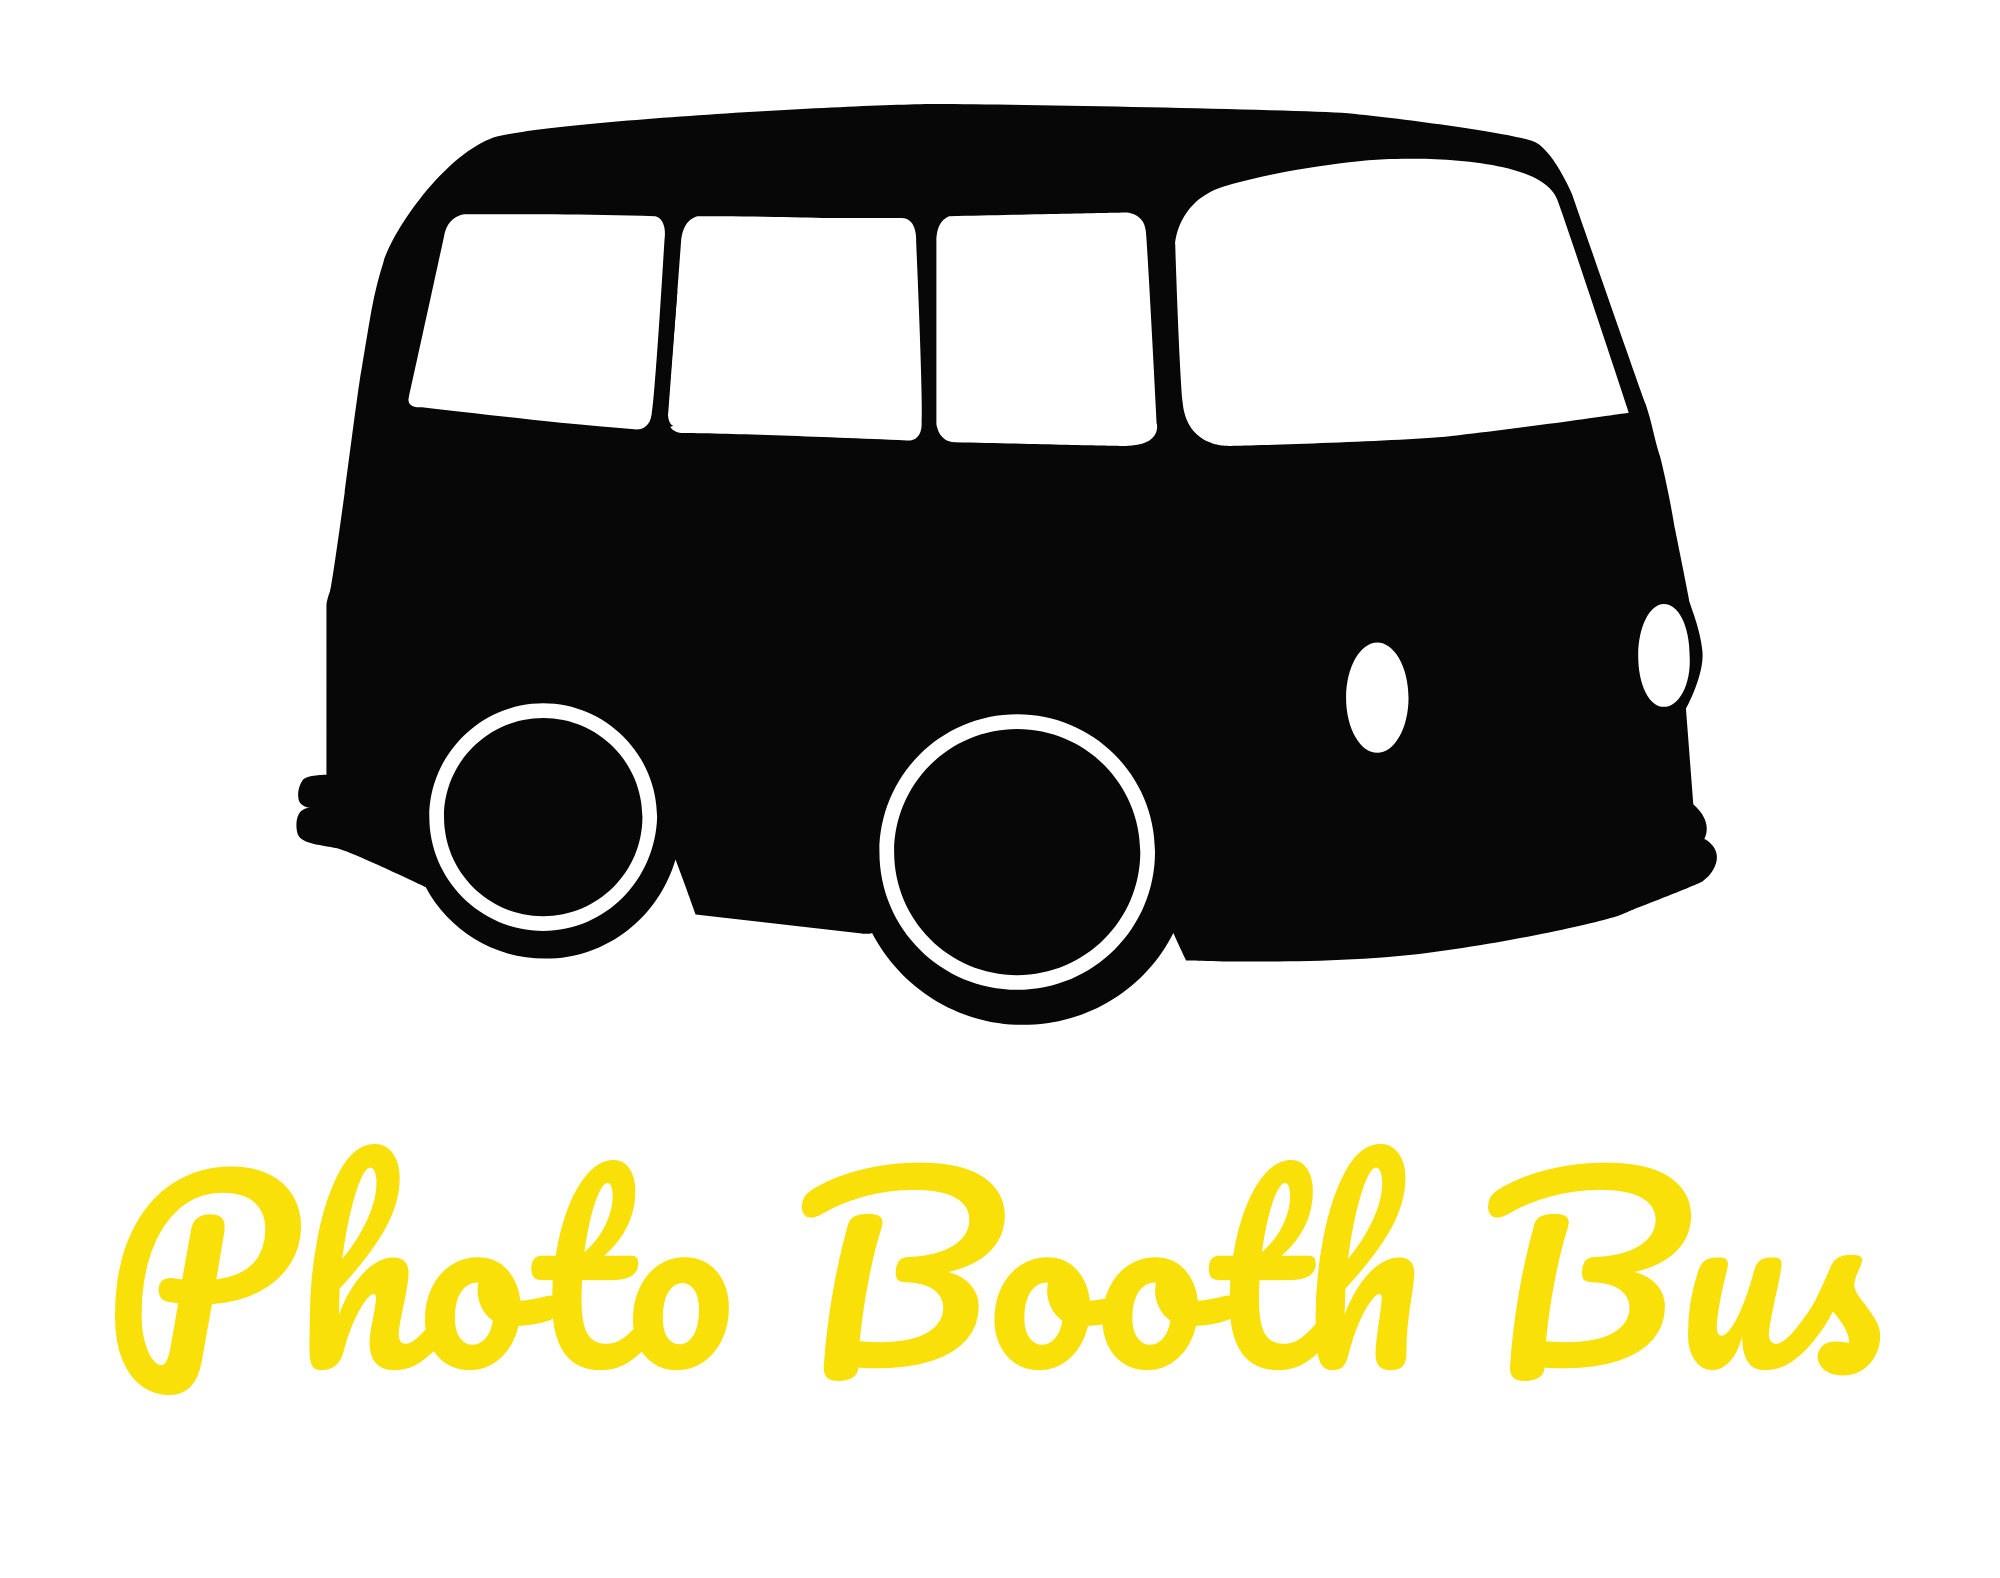 Mobile Photo Booth Bus-logo.png